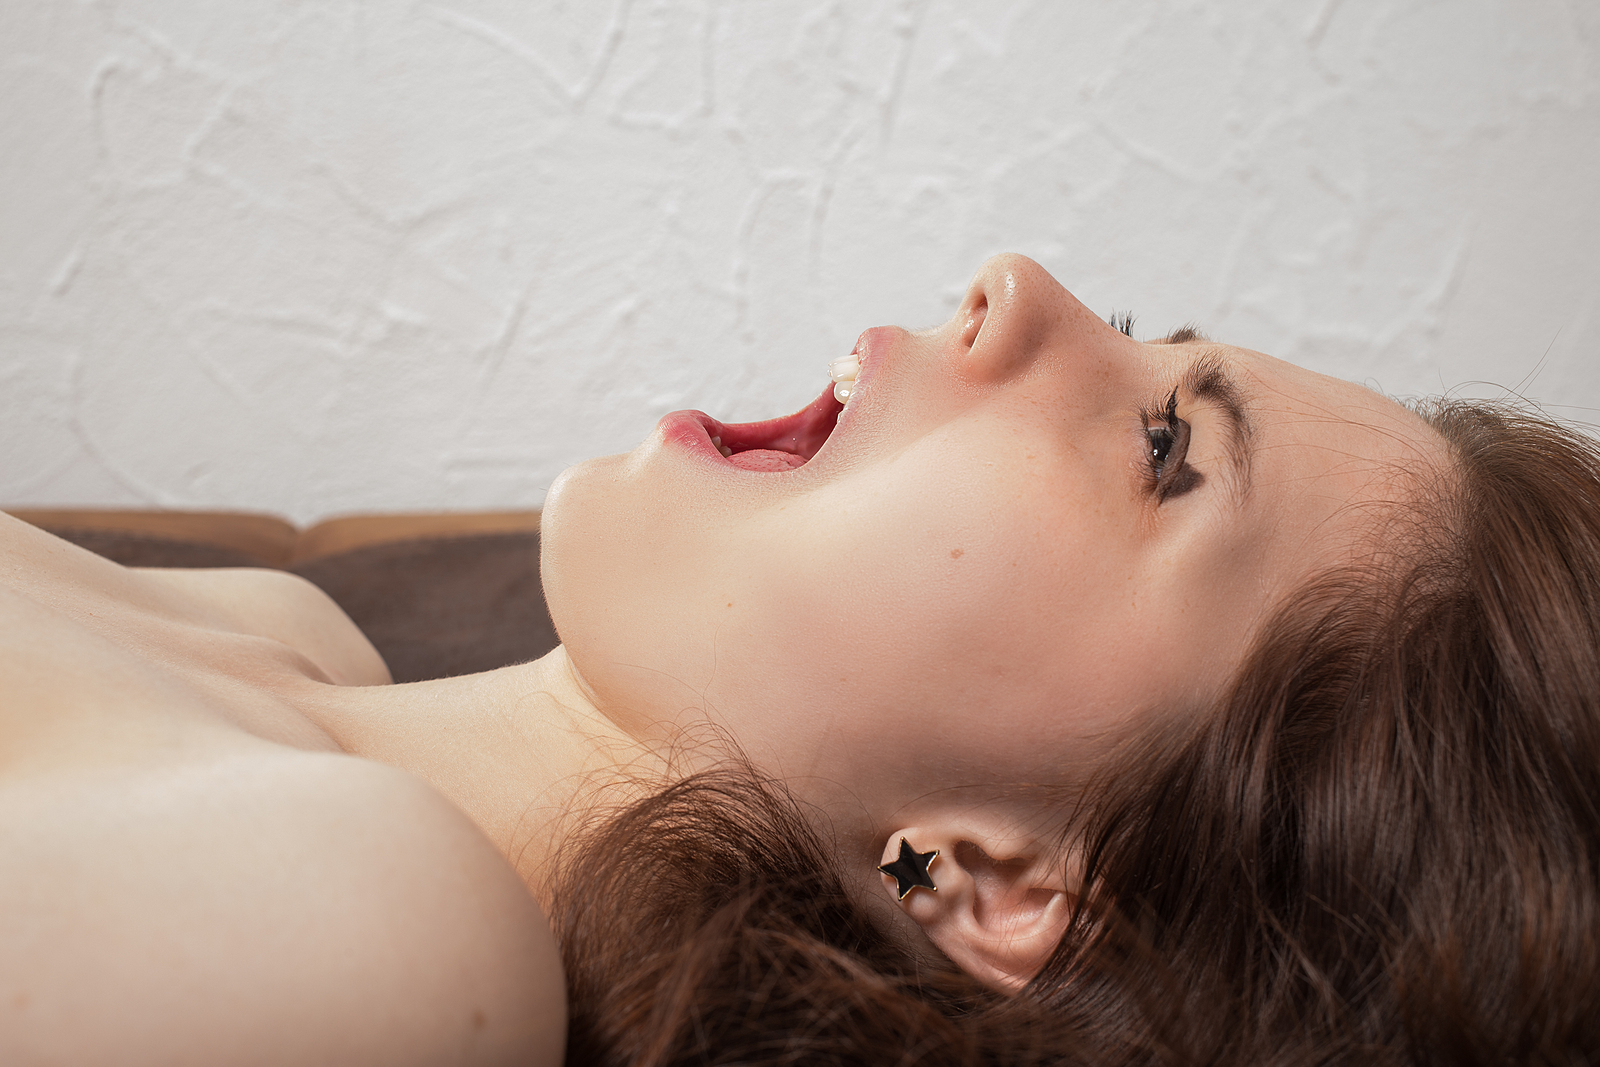 Female Anatomy The Key To Orgasm, Researchers Say -4026